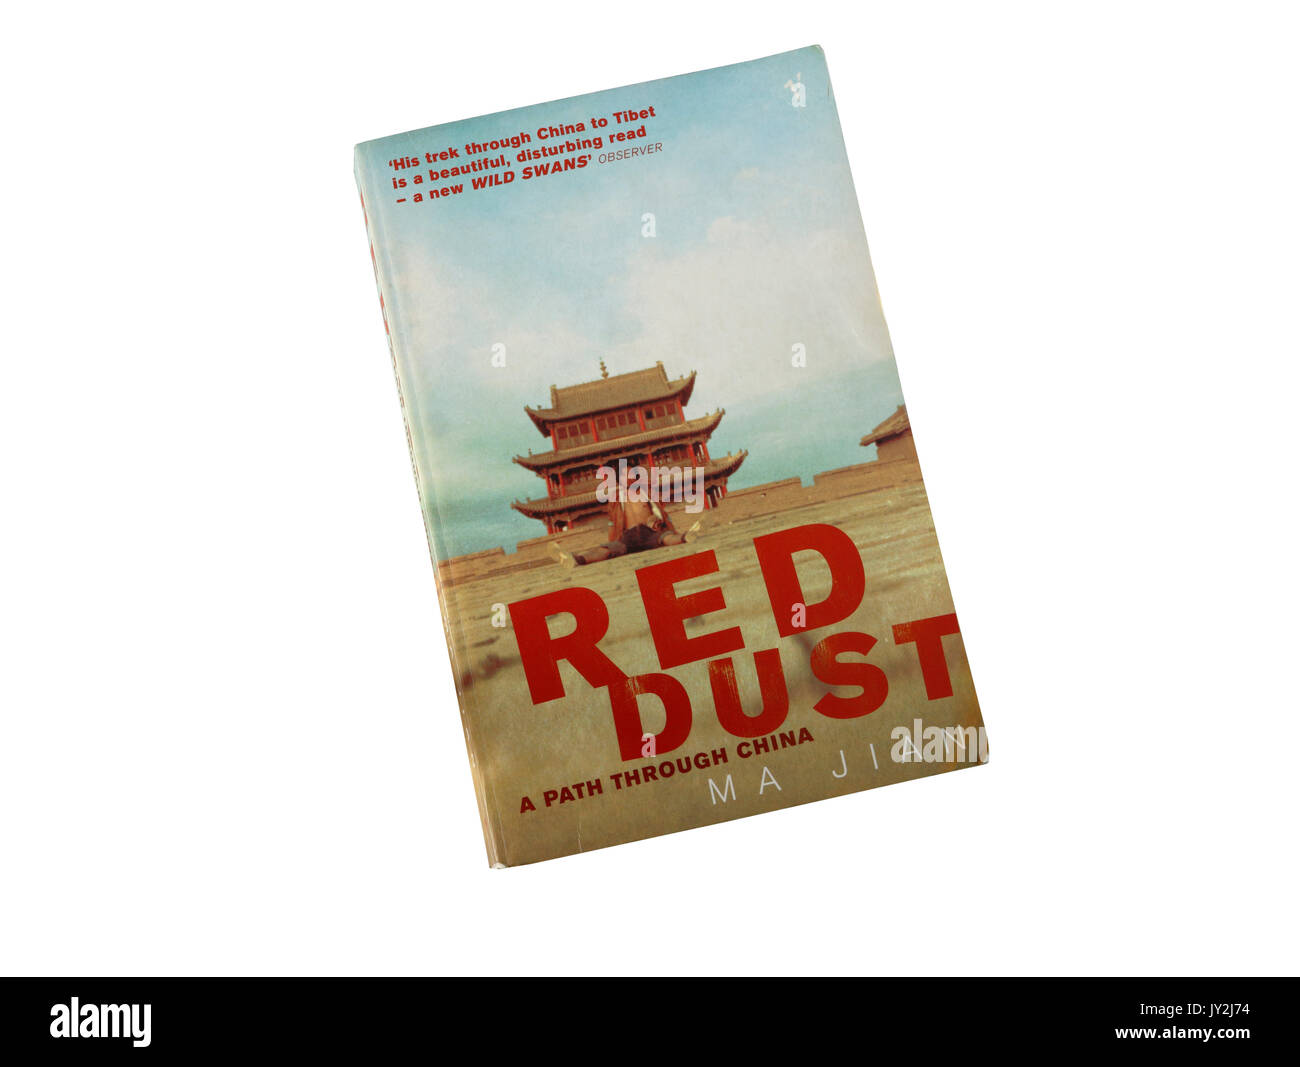 Red Dust by Ma Jian, Paperback book - Stock Image